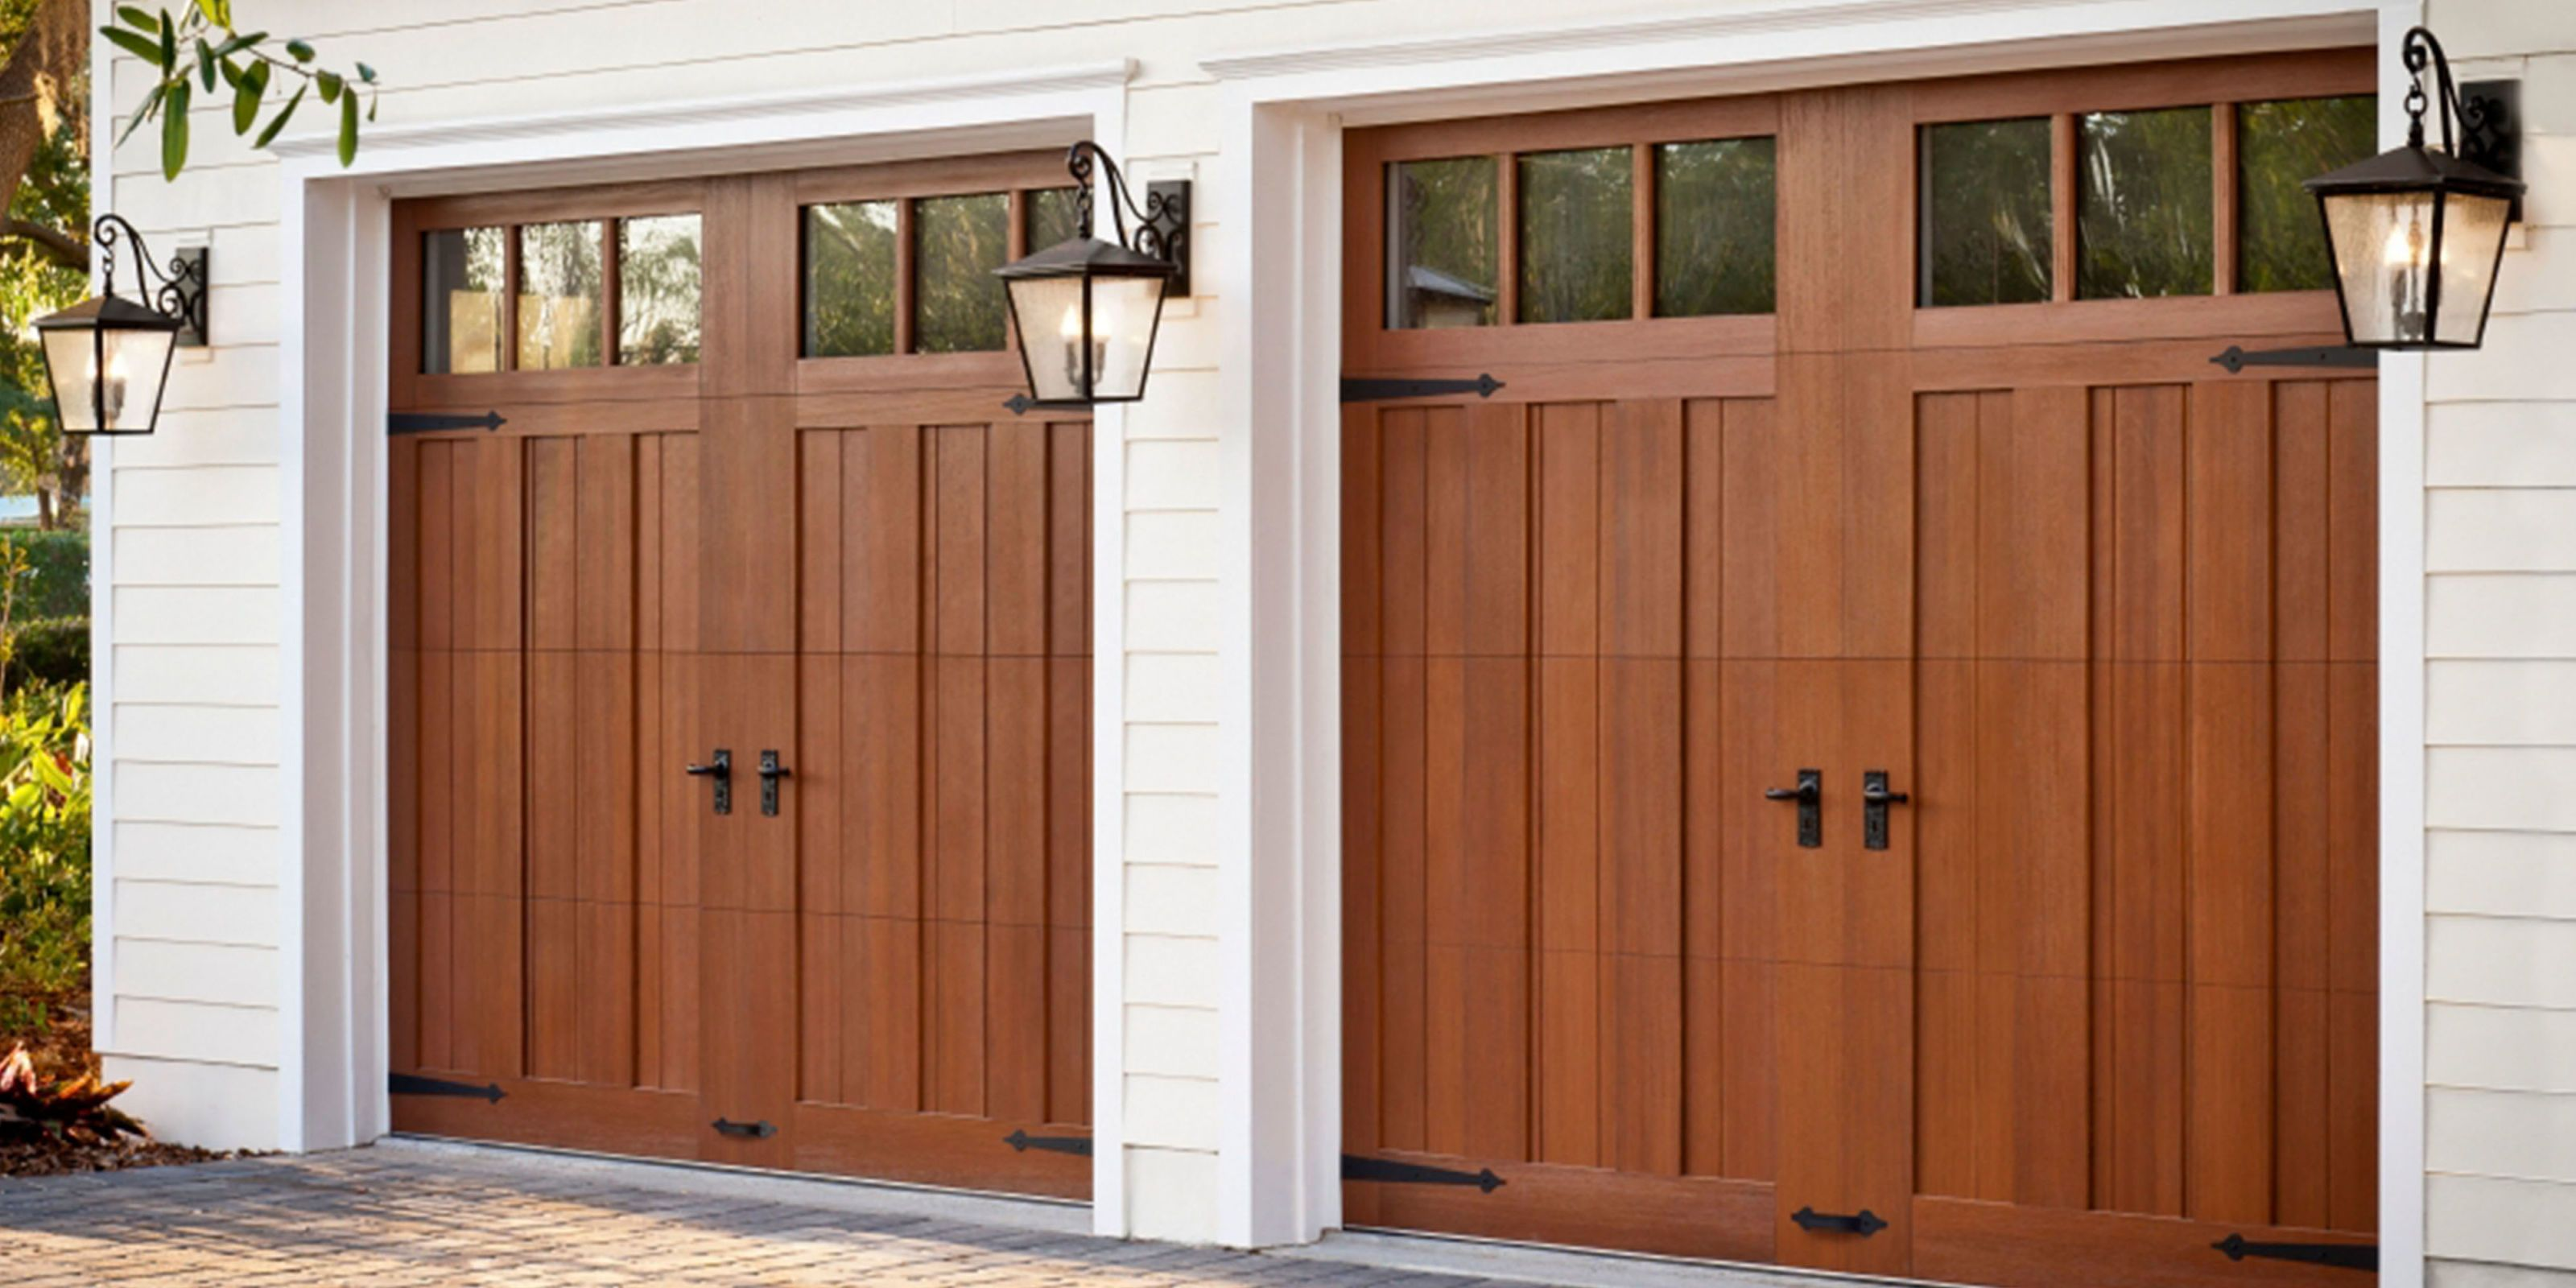 Andy Frame & Clopay Door Imagination System Review - How To Choose a Garage Door